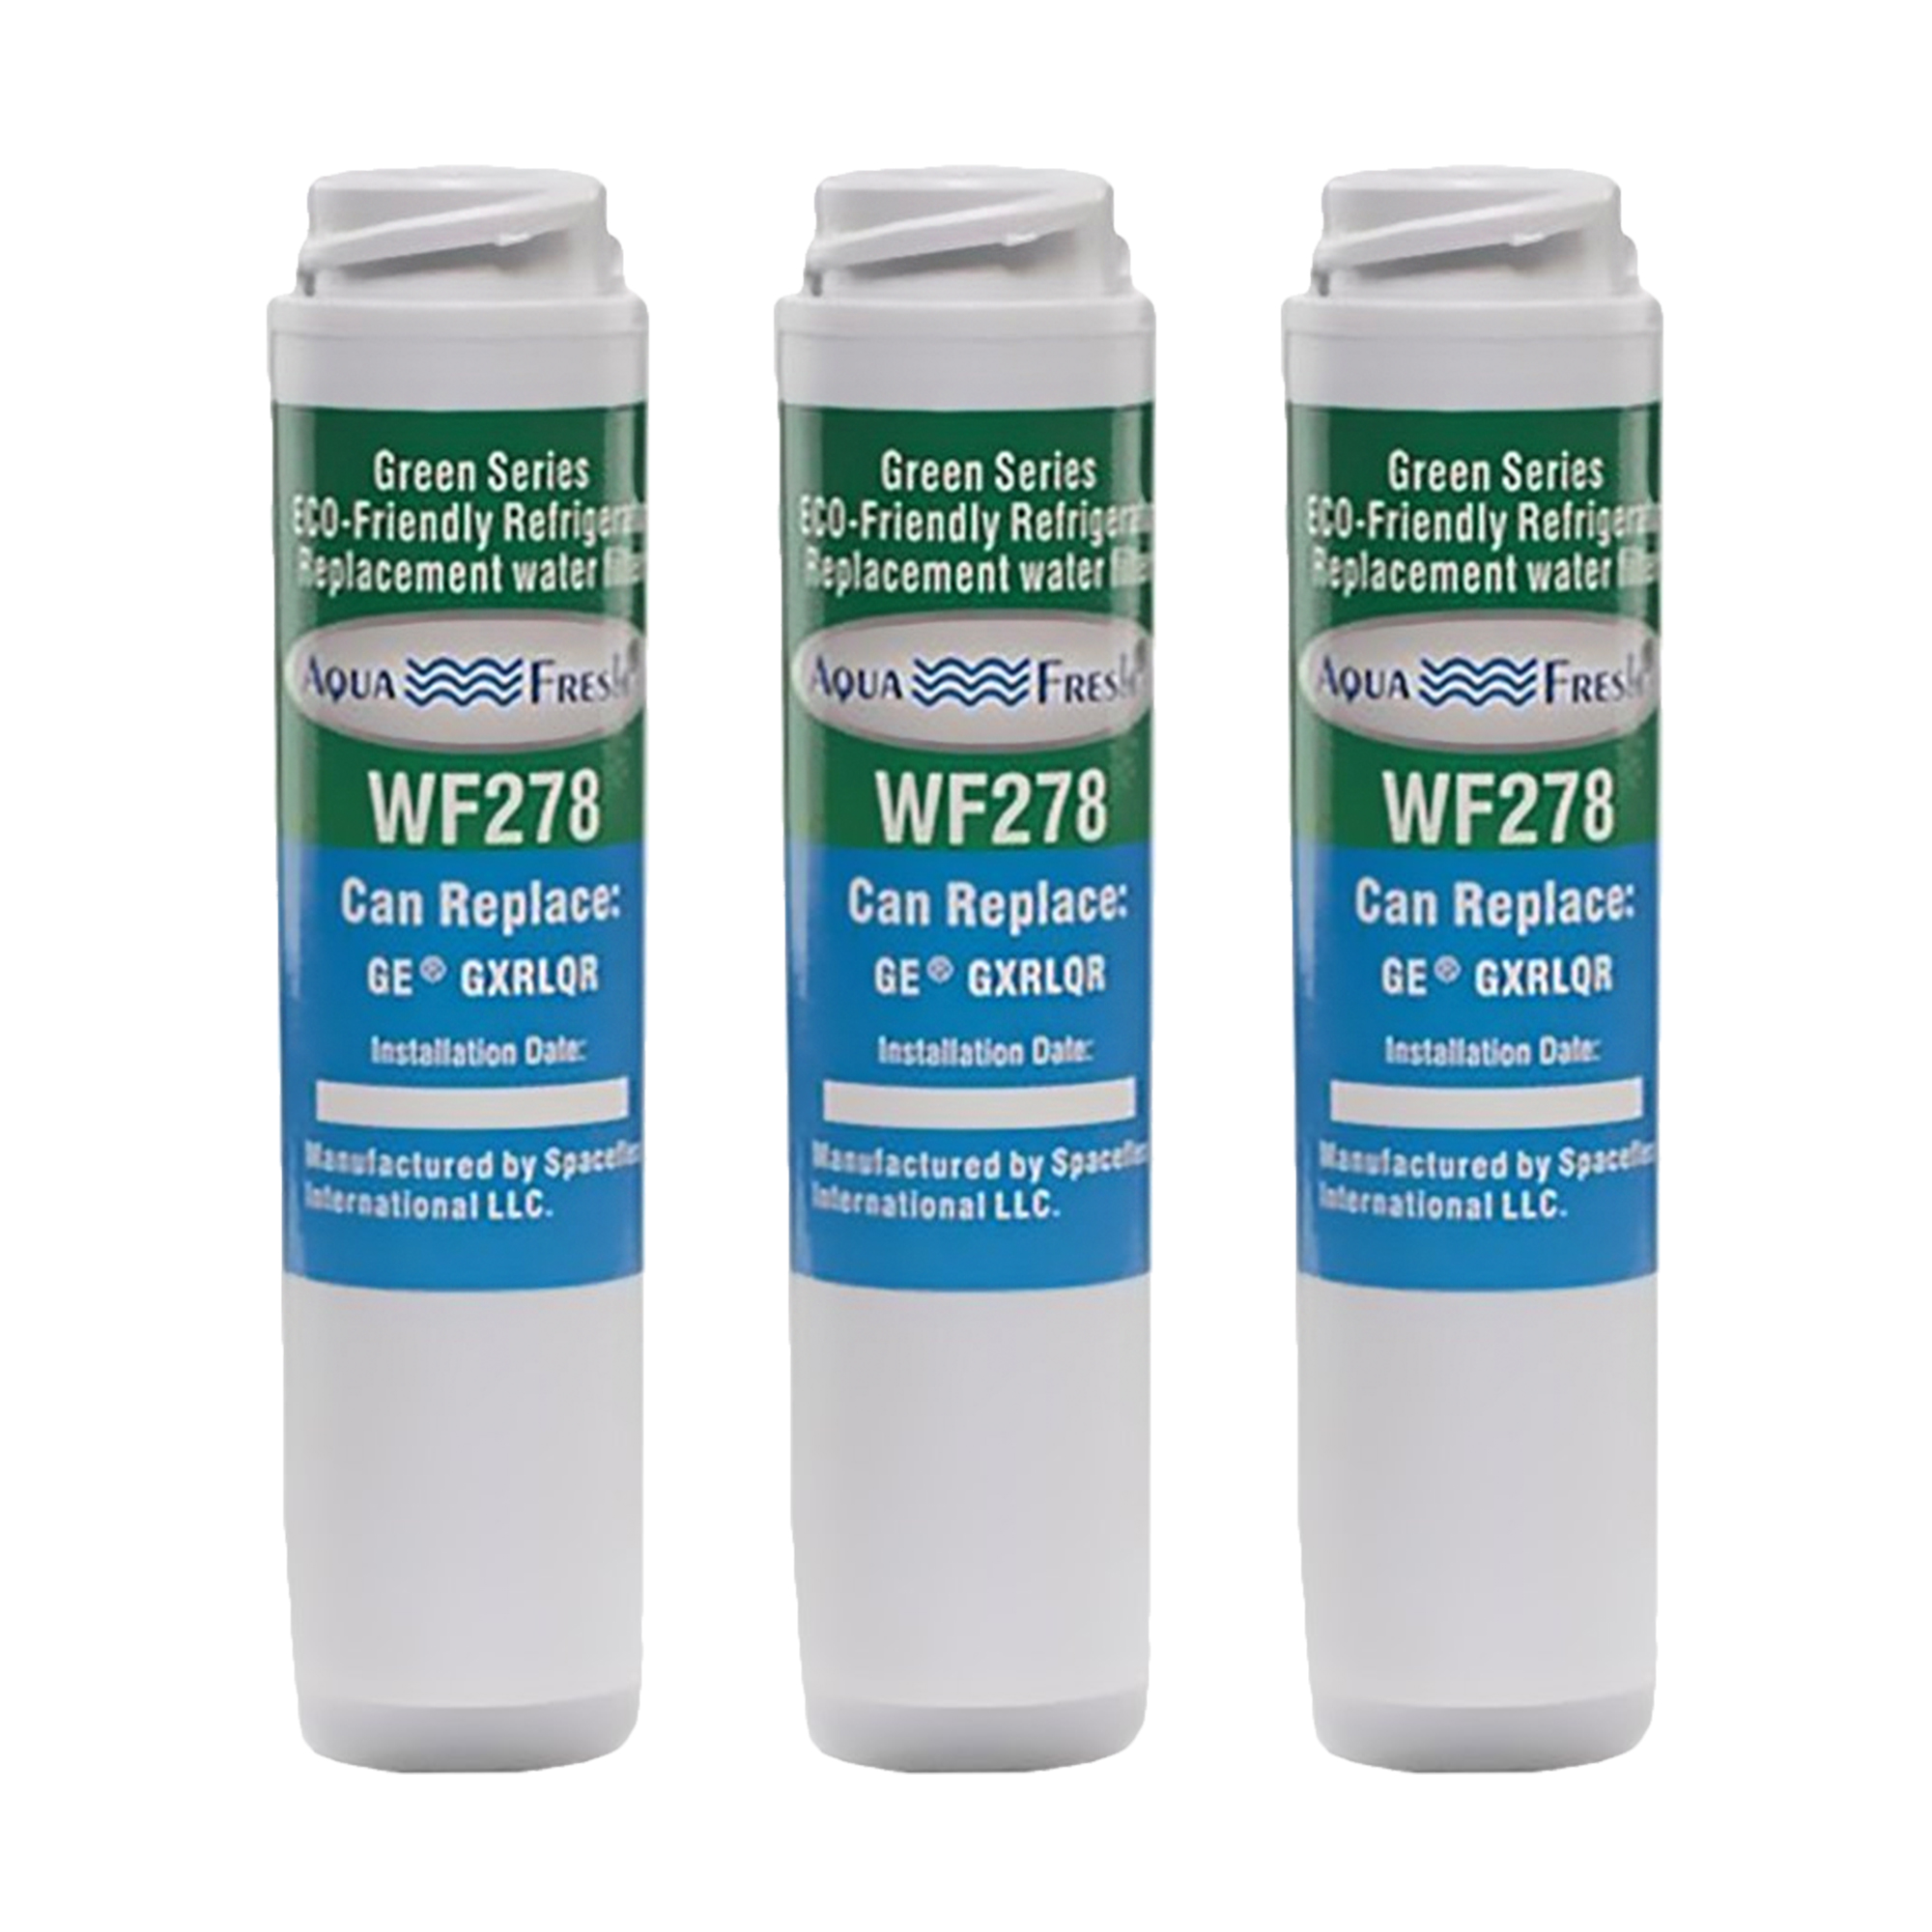 Replacement Aqua Fresh WF278 Refrigerator Water Filter For GE Appliance GXRLQR (3 Pack)